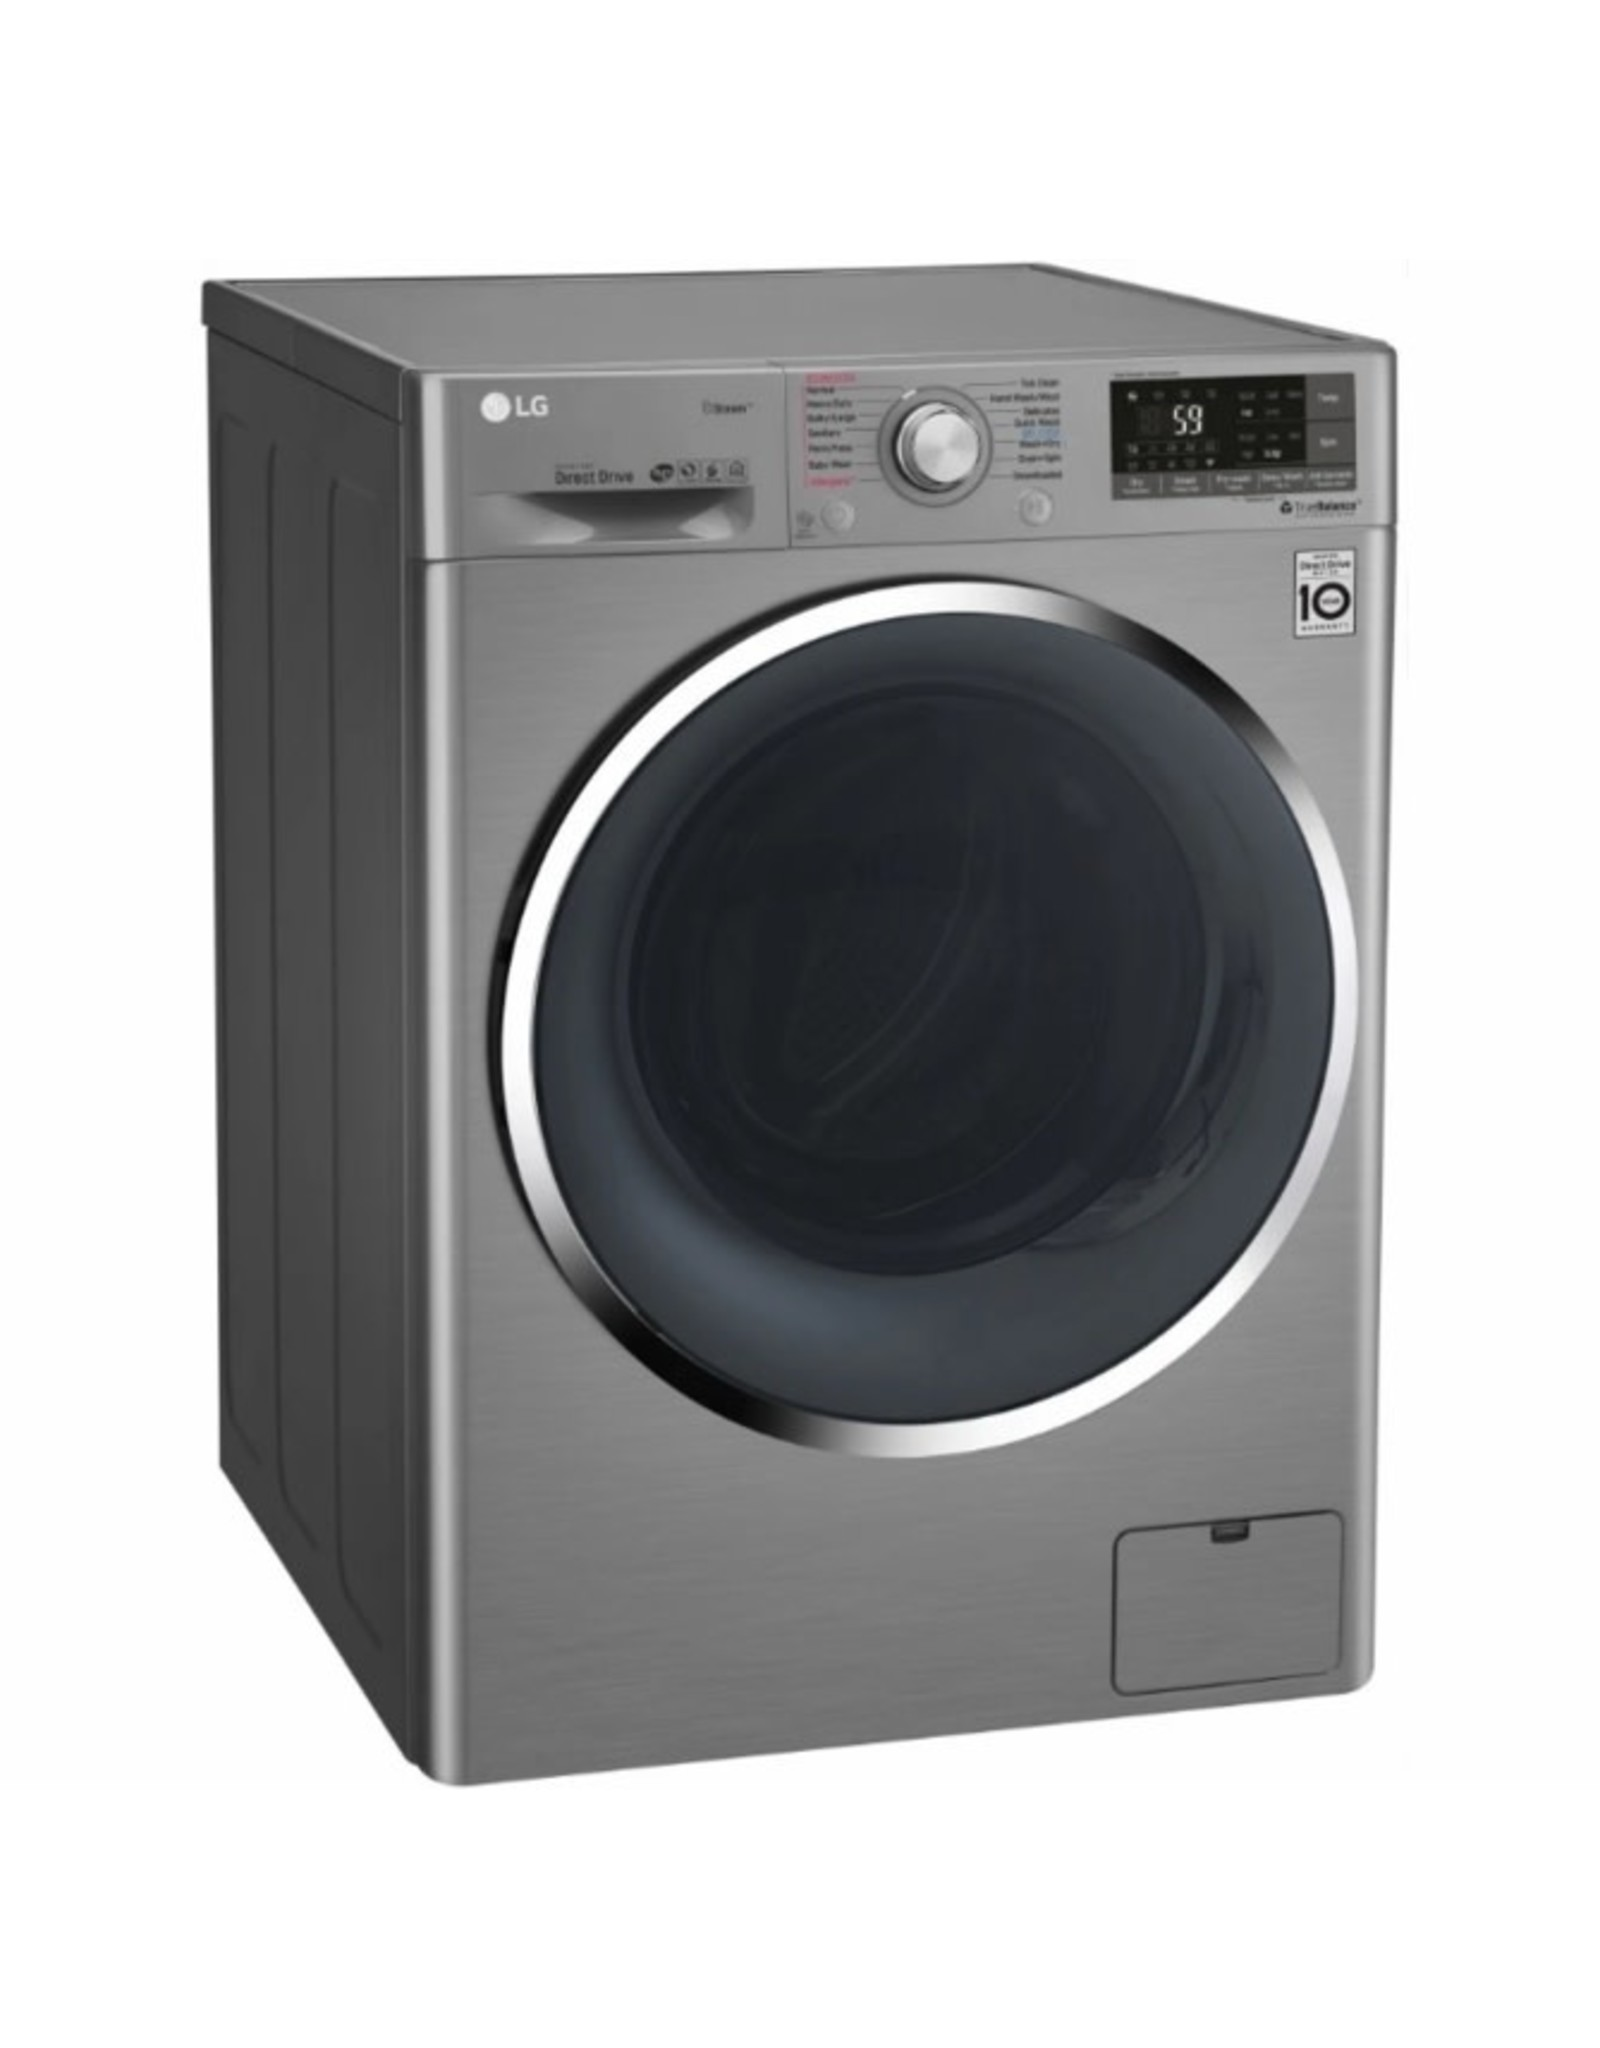 LG Electronics 2.3 cu. ft. Graphite Steel Compact Smart All-in-One Front Load Washer and Electric Ventless Dryer Combo with Steam